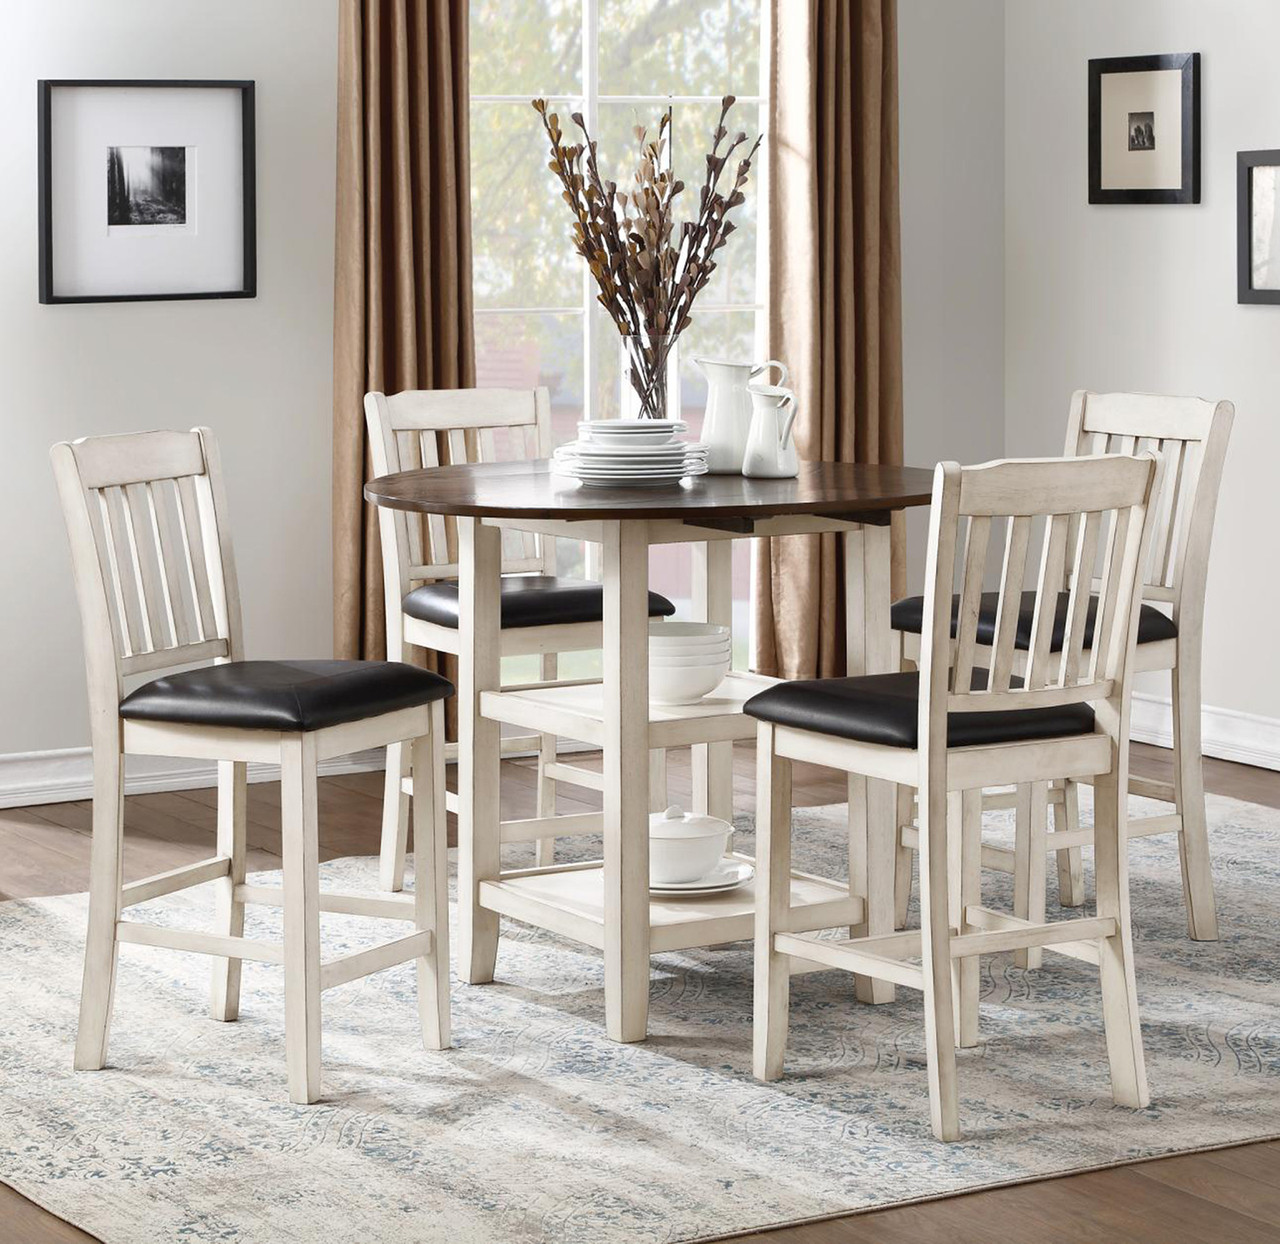 Coral 5-PC Counter Height Dining Set - CB Furniture